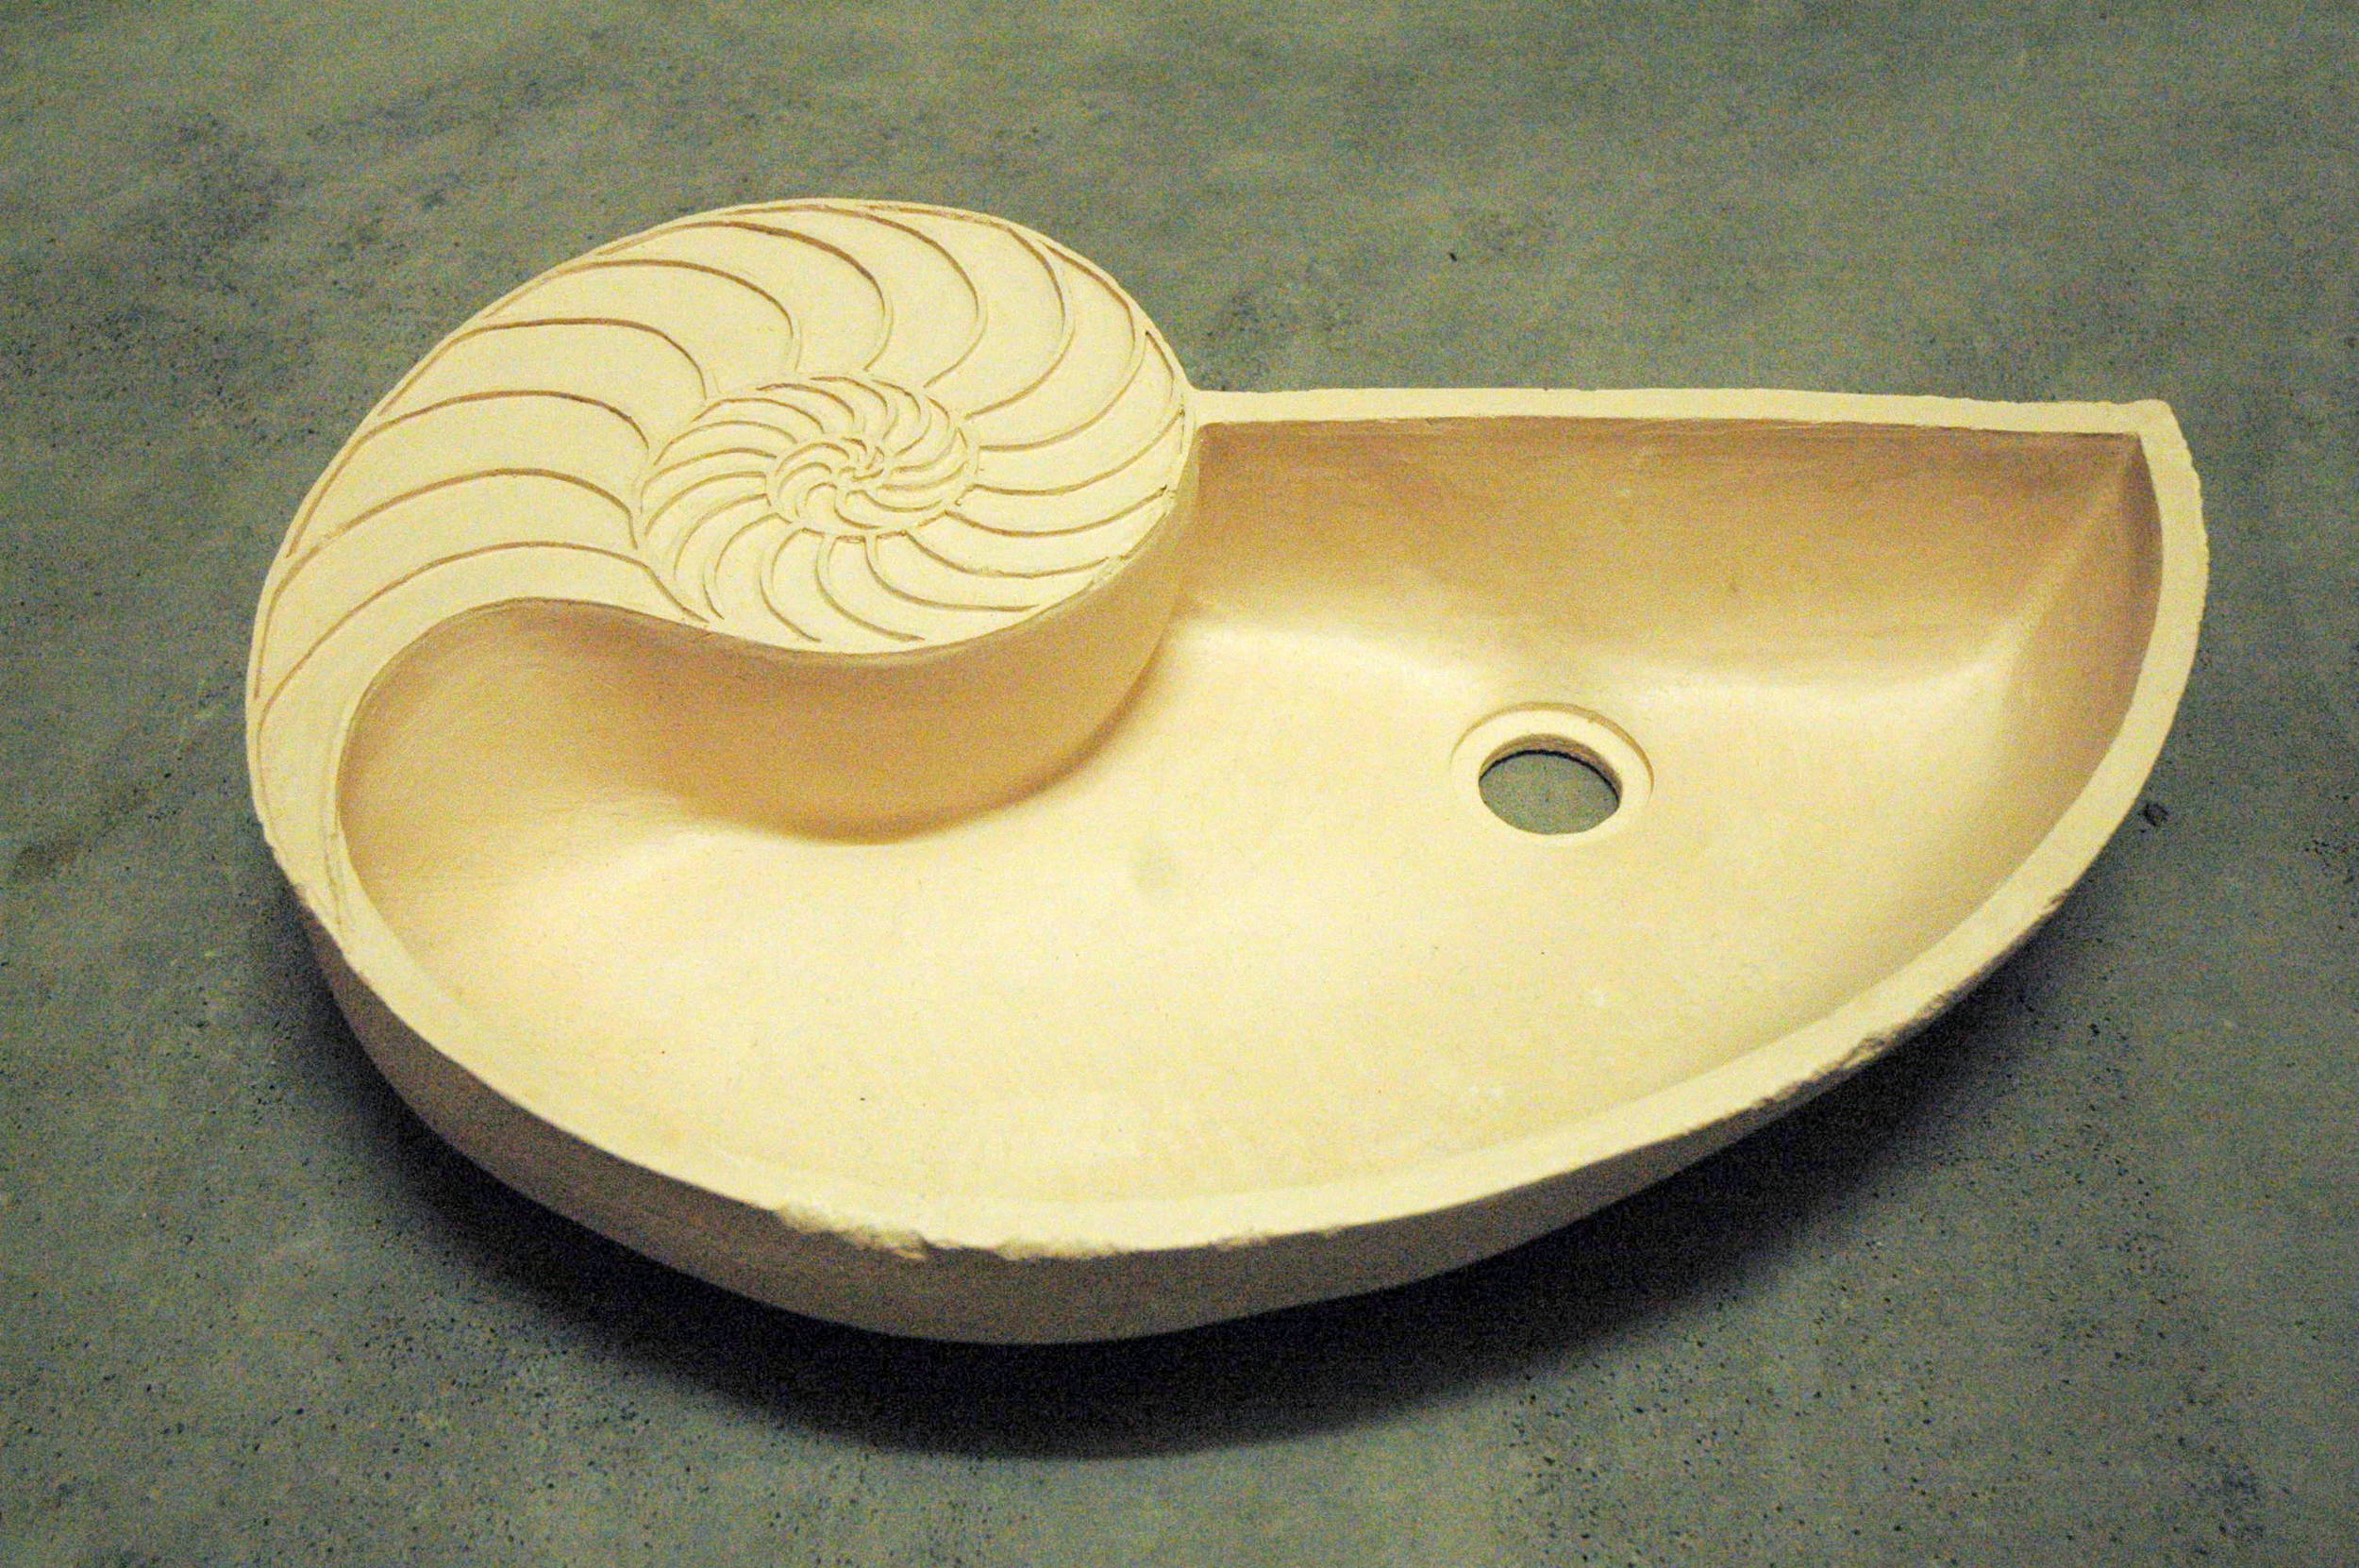 This basin is currently at the bisque stage of production, ready to glaze as desired.